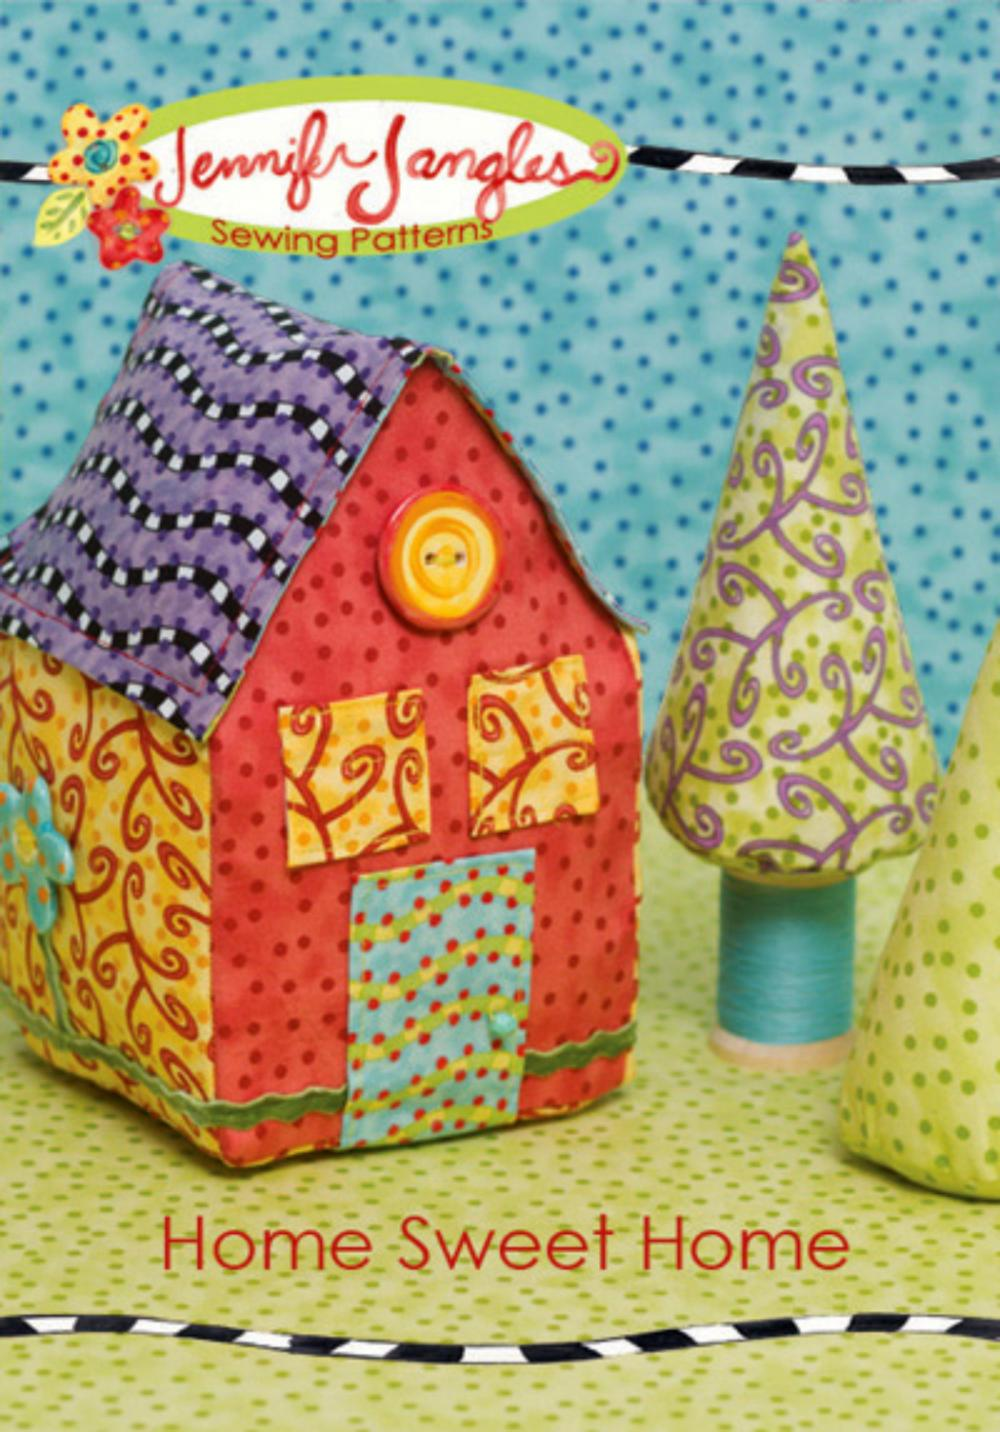 New Home Sweet Home Pattern by Jennifer Jangles Bright and Fun!